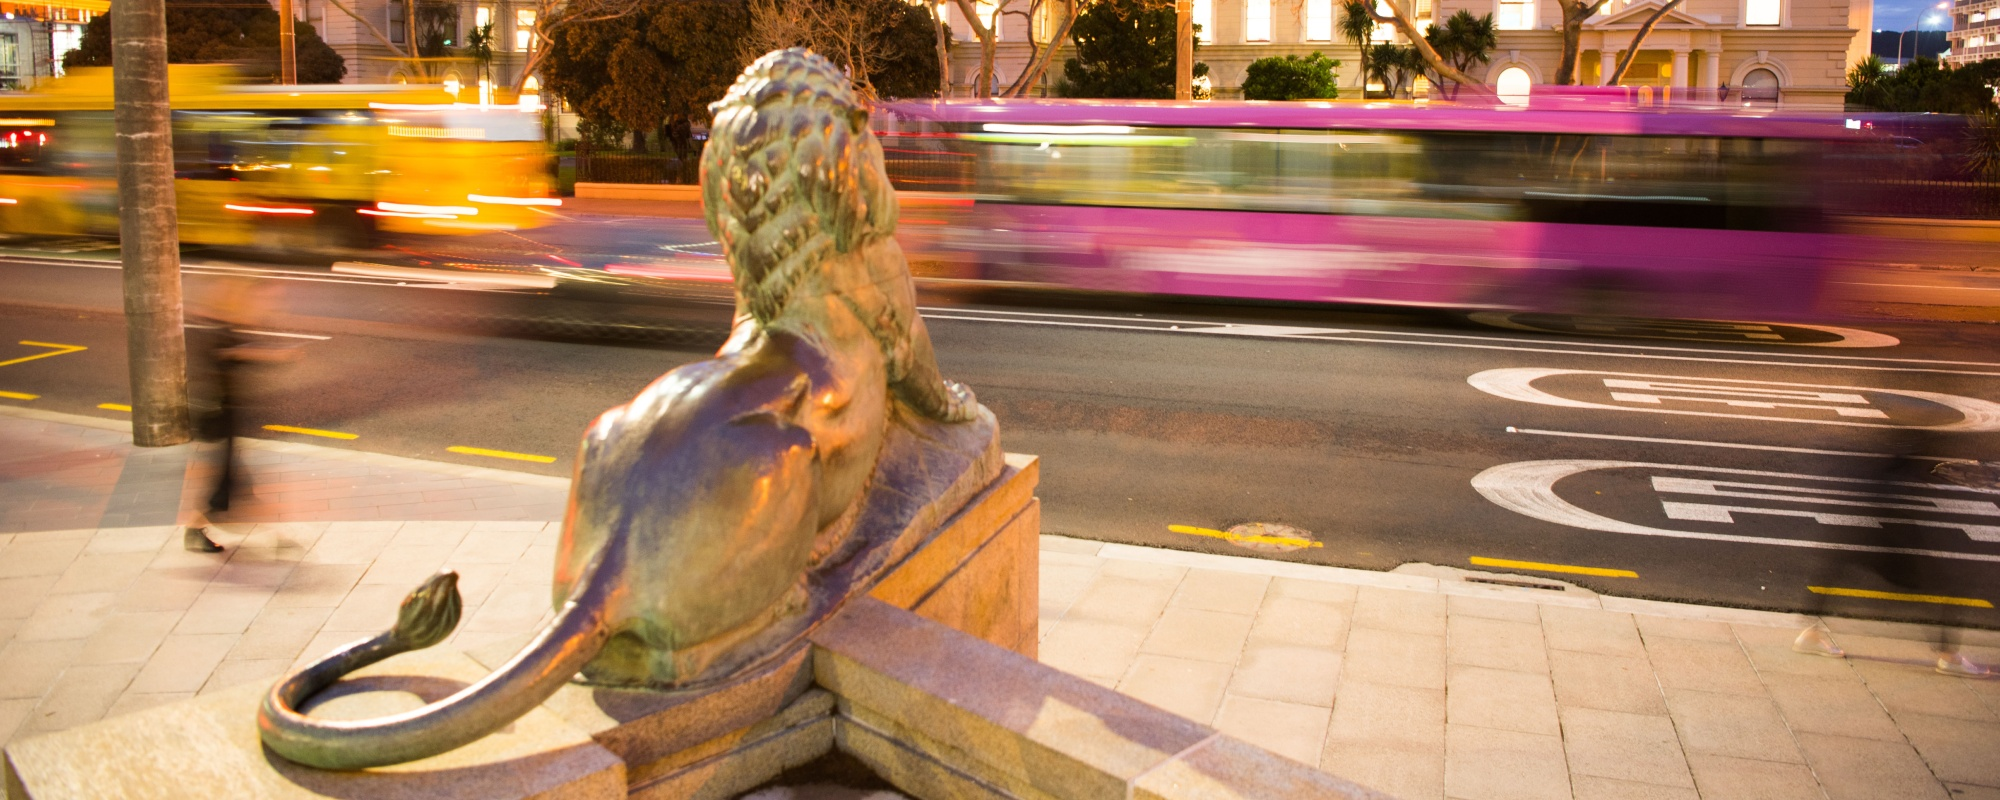 Looking from behind a lion statue across the road at dusk, with the Old Government Buildings in the background